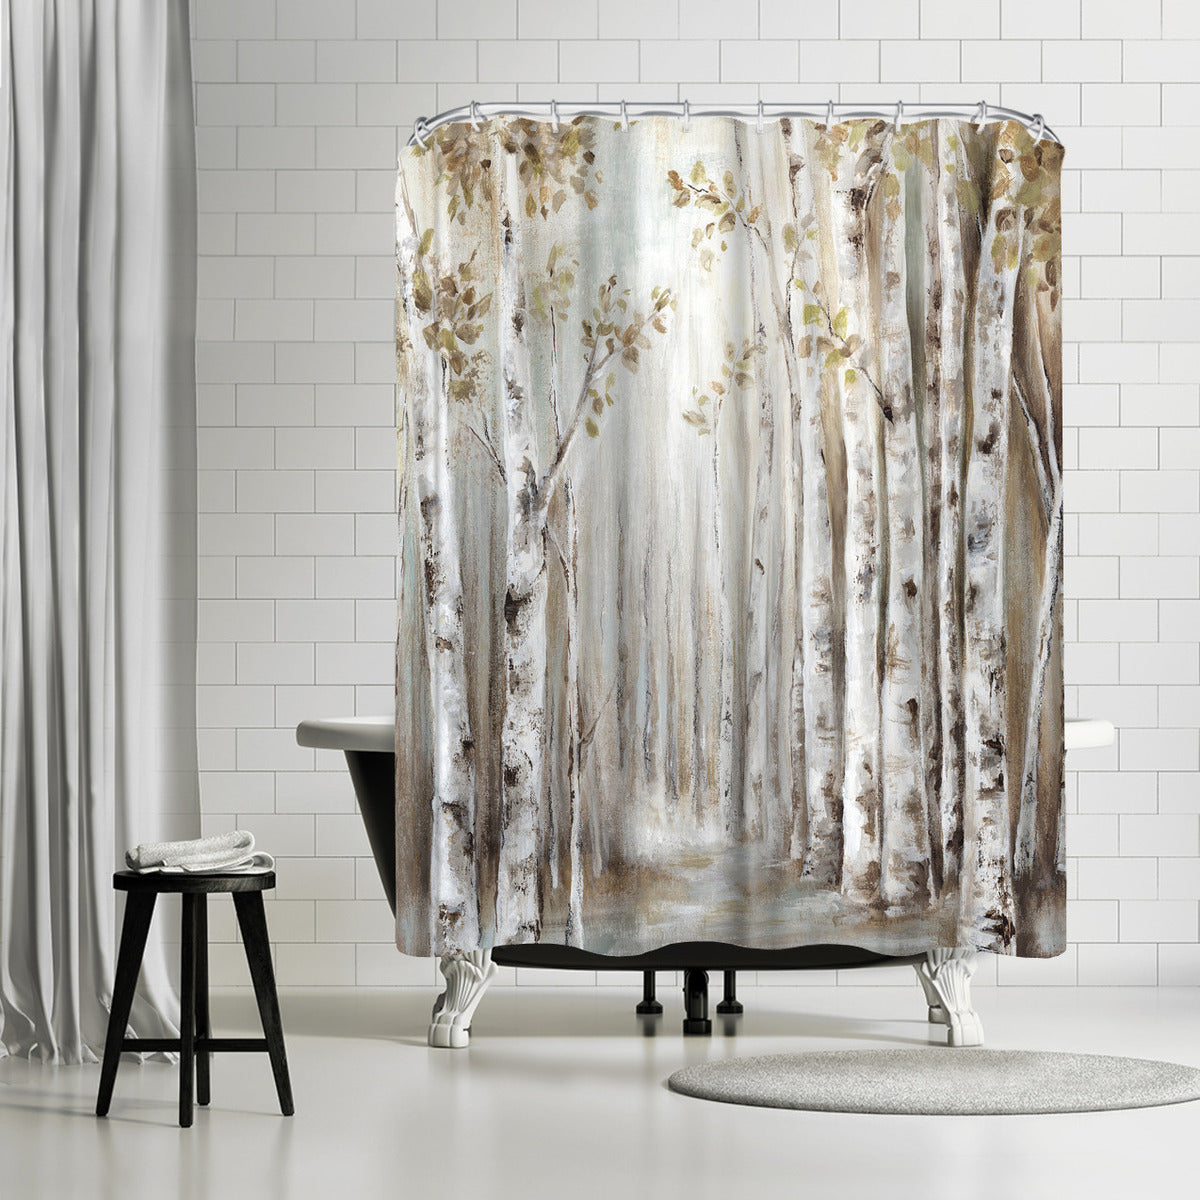 Sunset Birch Forest Iii by PI Creative Art Shower Curtain - Shower Curtain - Americanflat